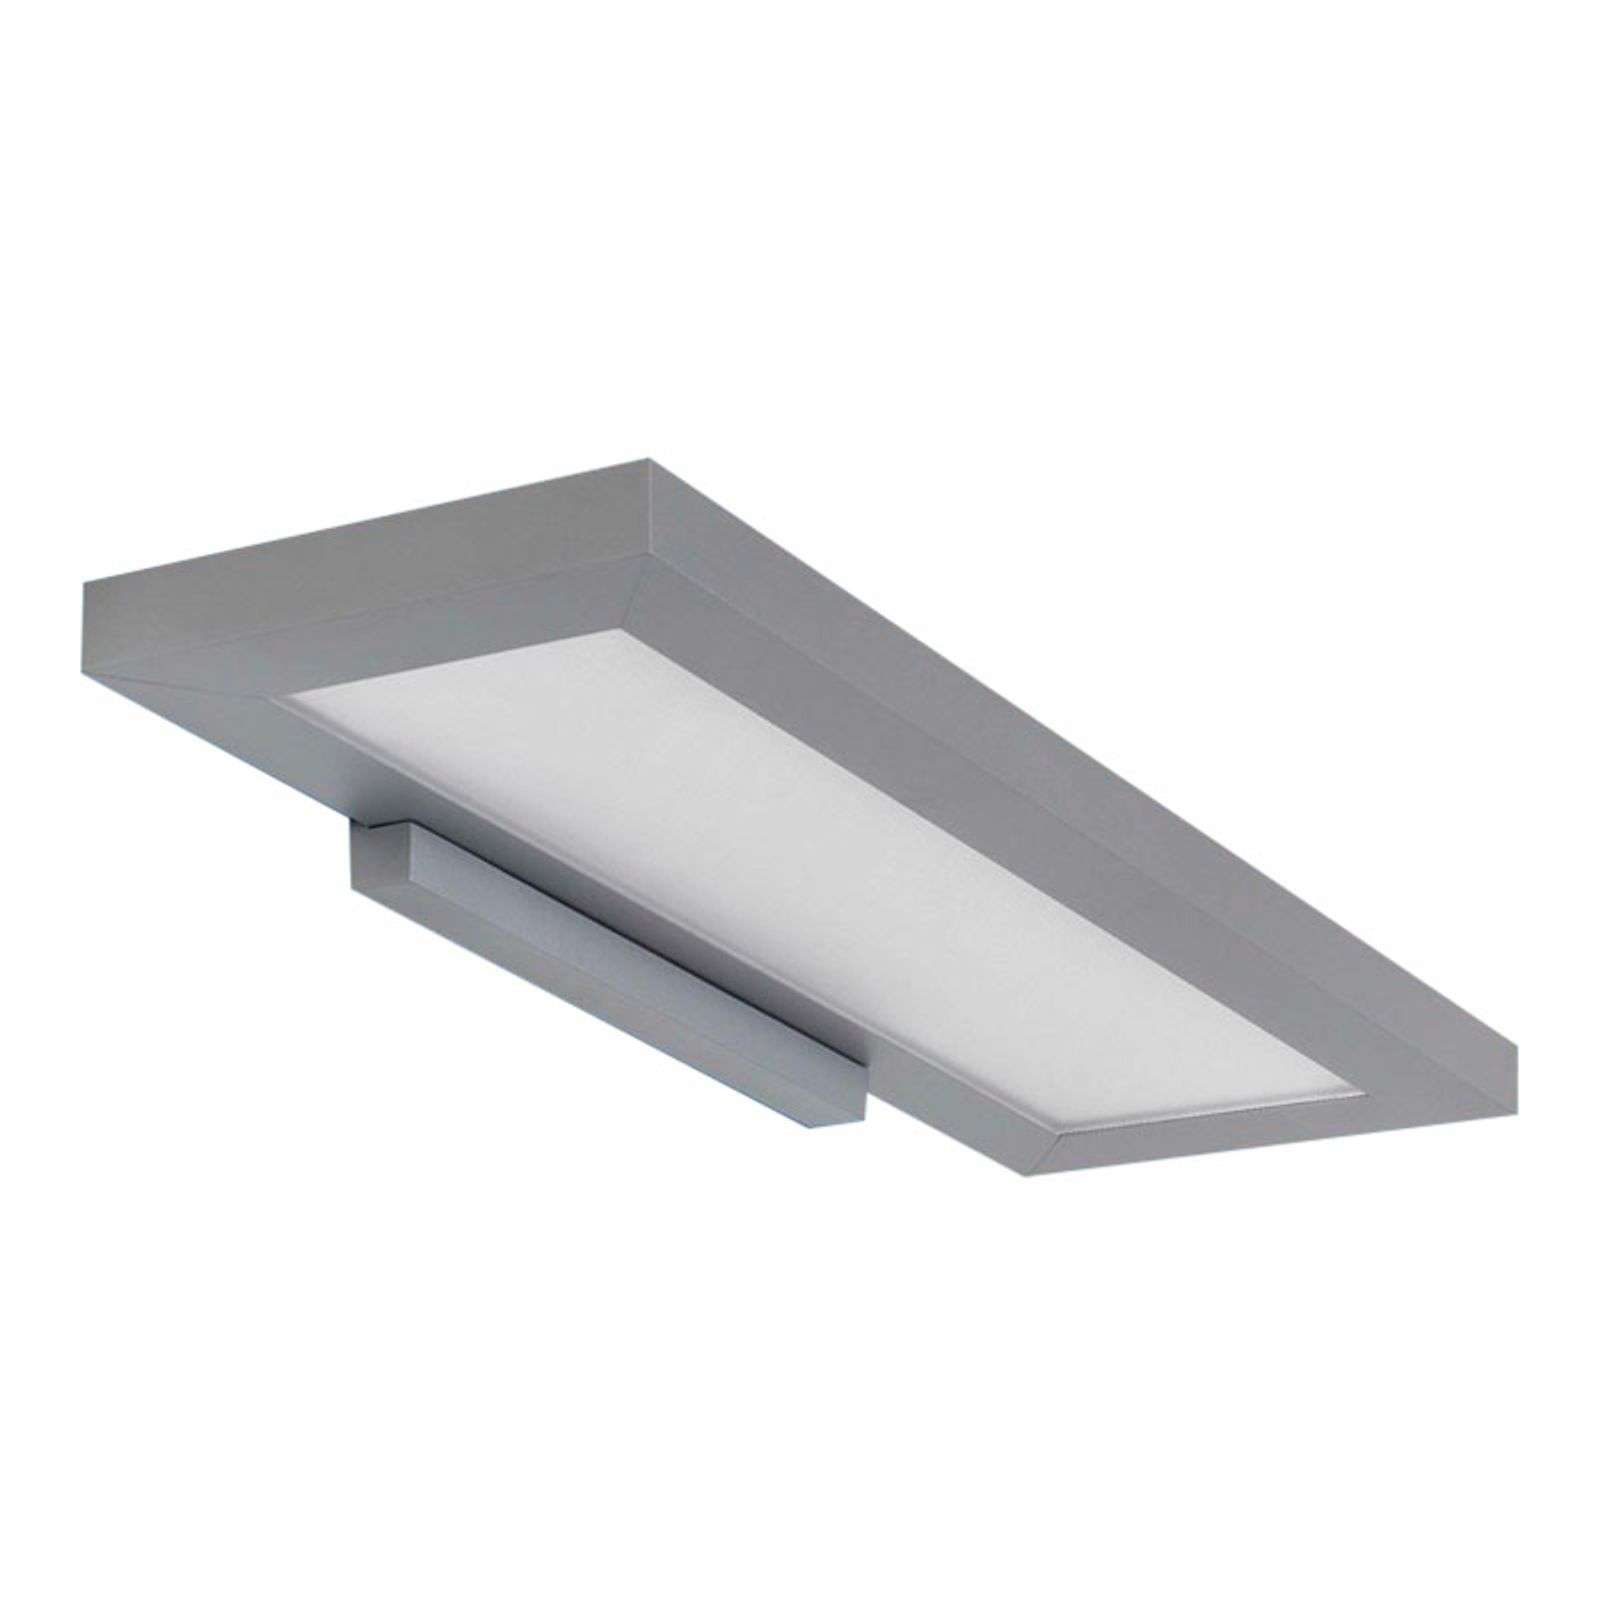 Applique LED CWP à vitre opale, 30 W